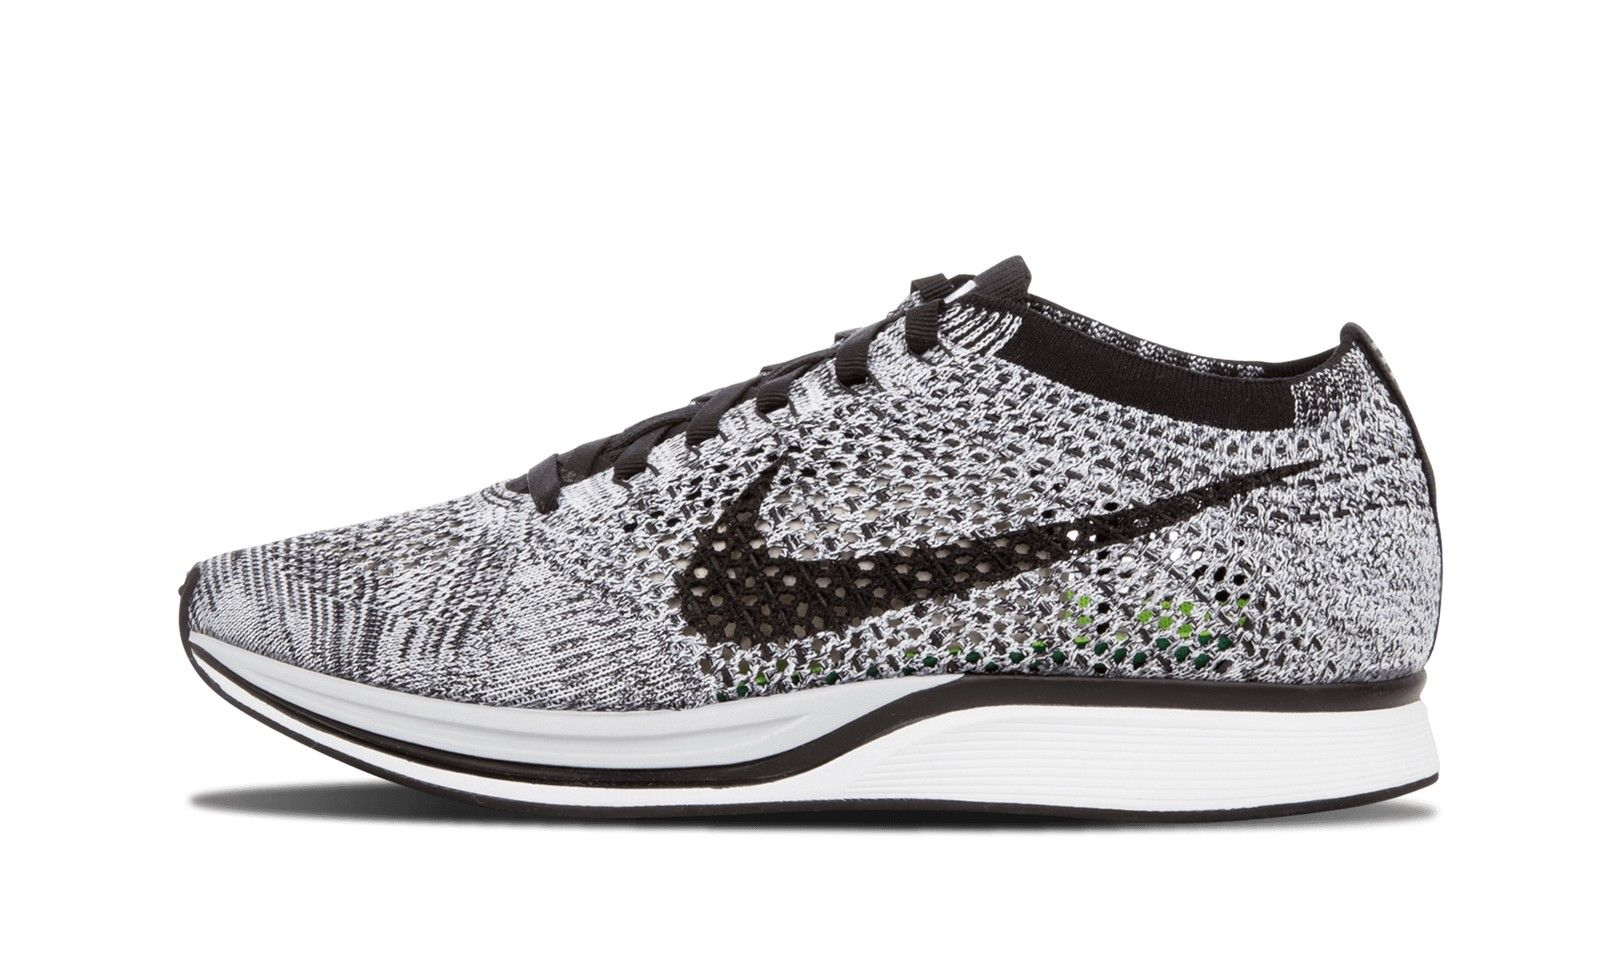 release nike flyknit racer oreo. Black Bedroom Furniture Sets. Home Design Ideas